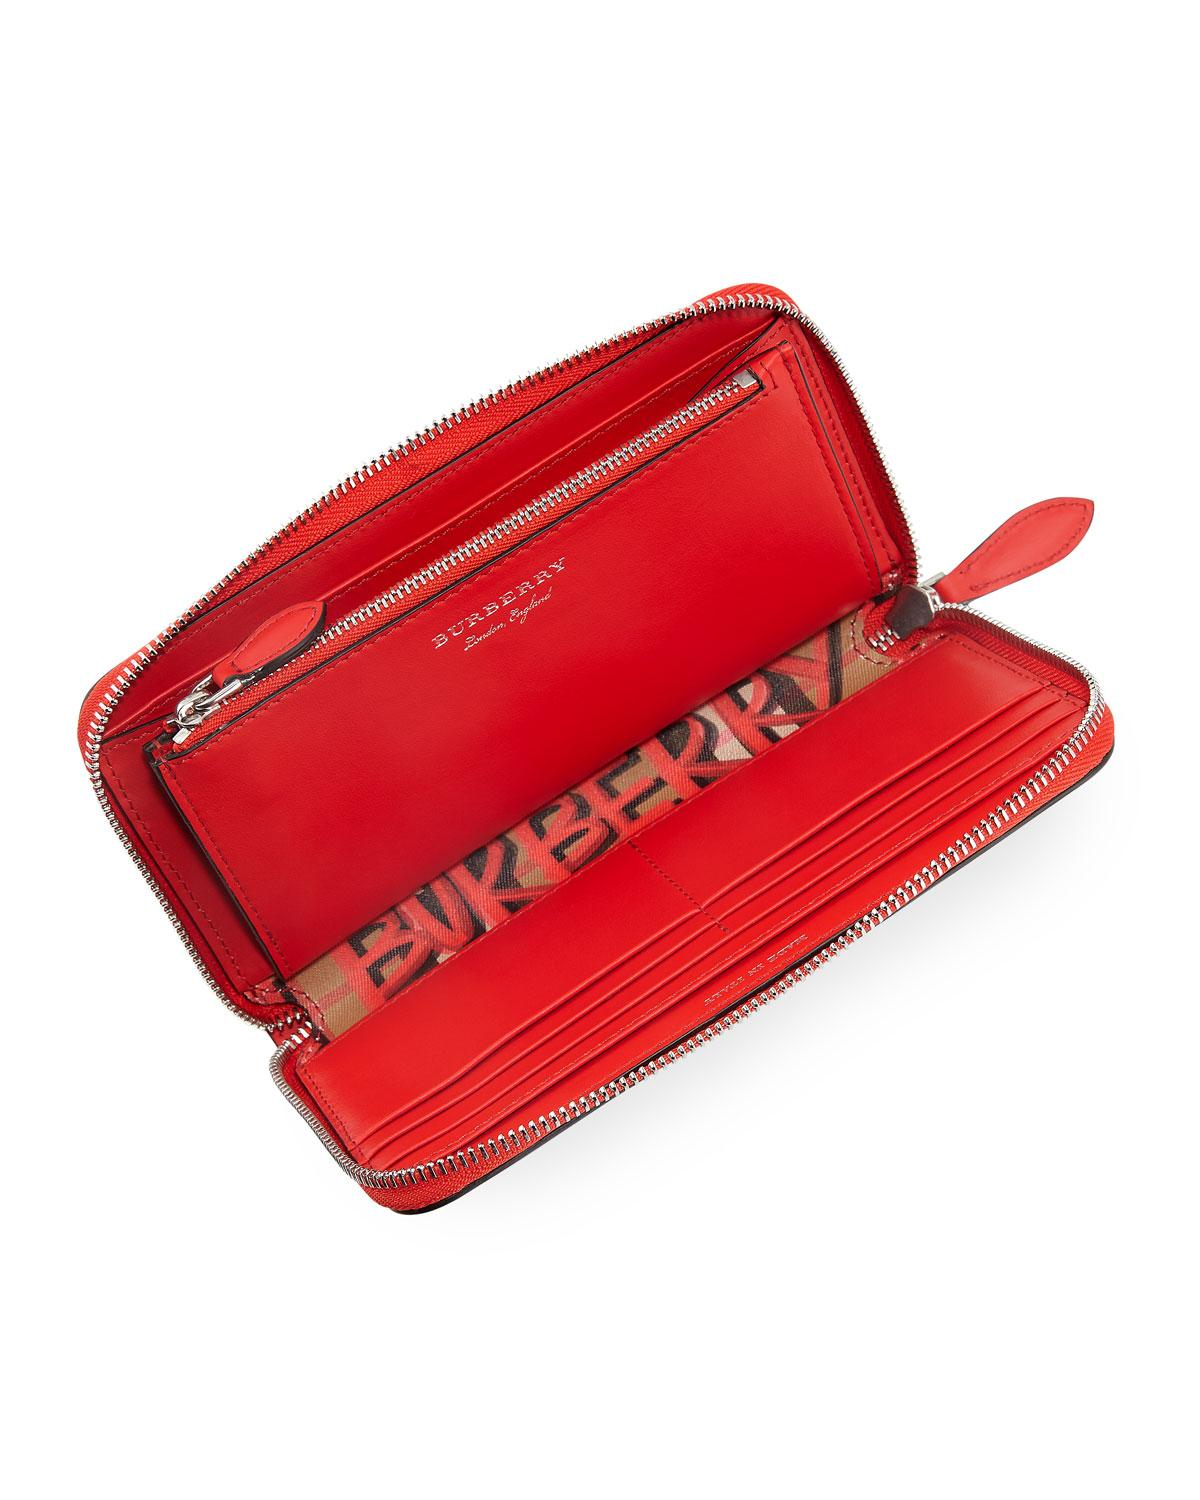 0a05d1c47a0 Lyst - Burberry Graffiti Check Continental Wallet in Red